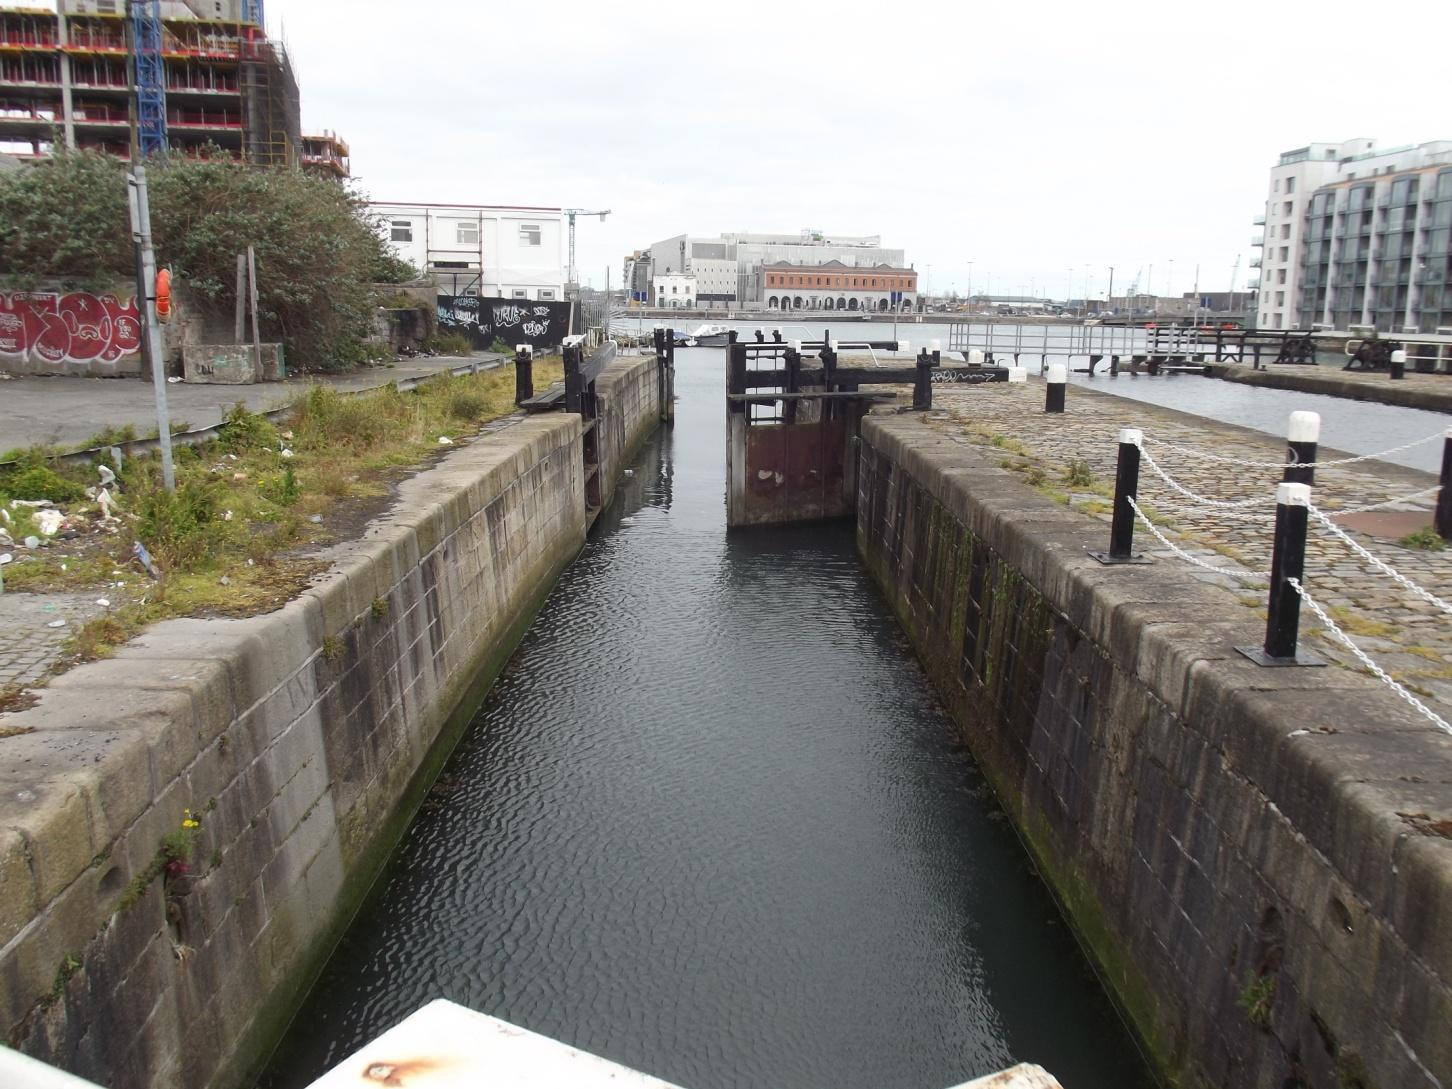 The Westmoreland Lock Gate was filled with a skip load of refuse before it was removed by our volunteers